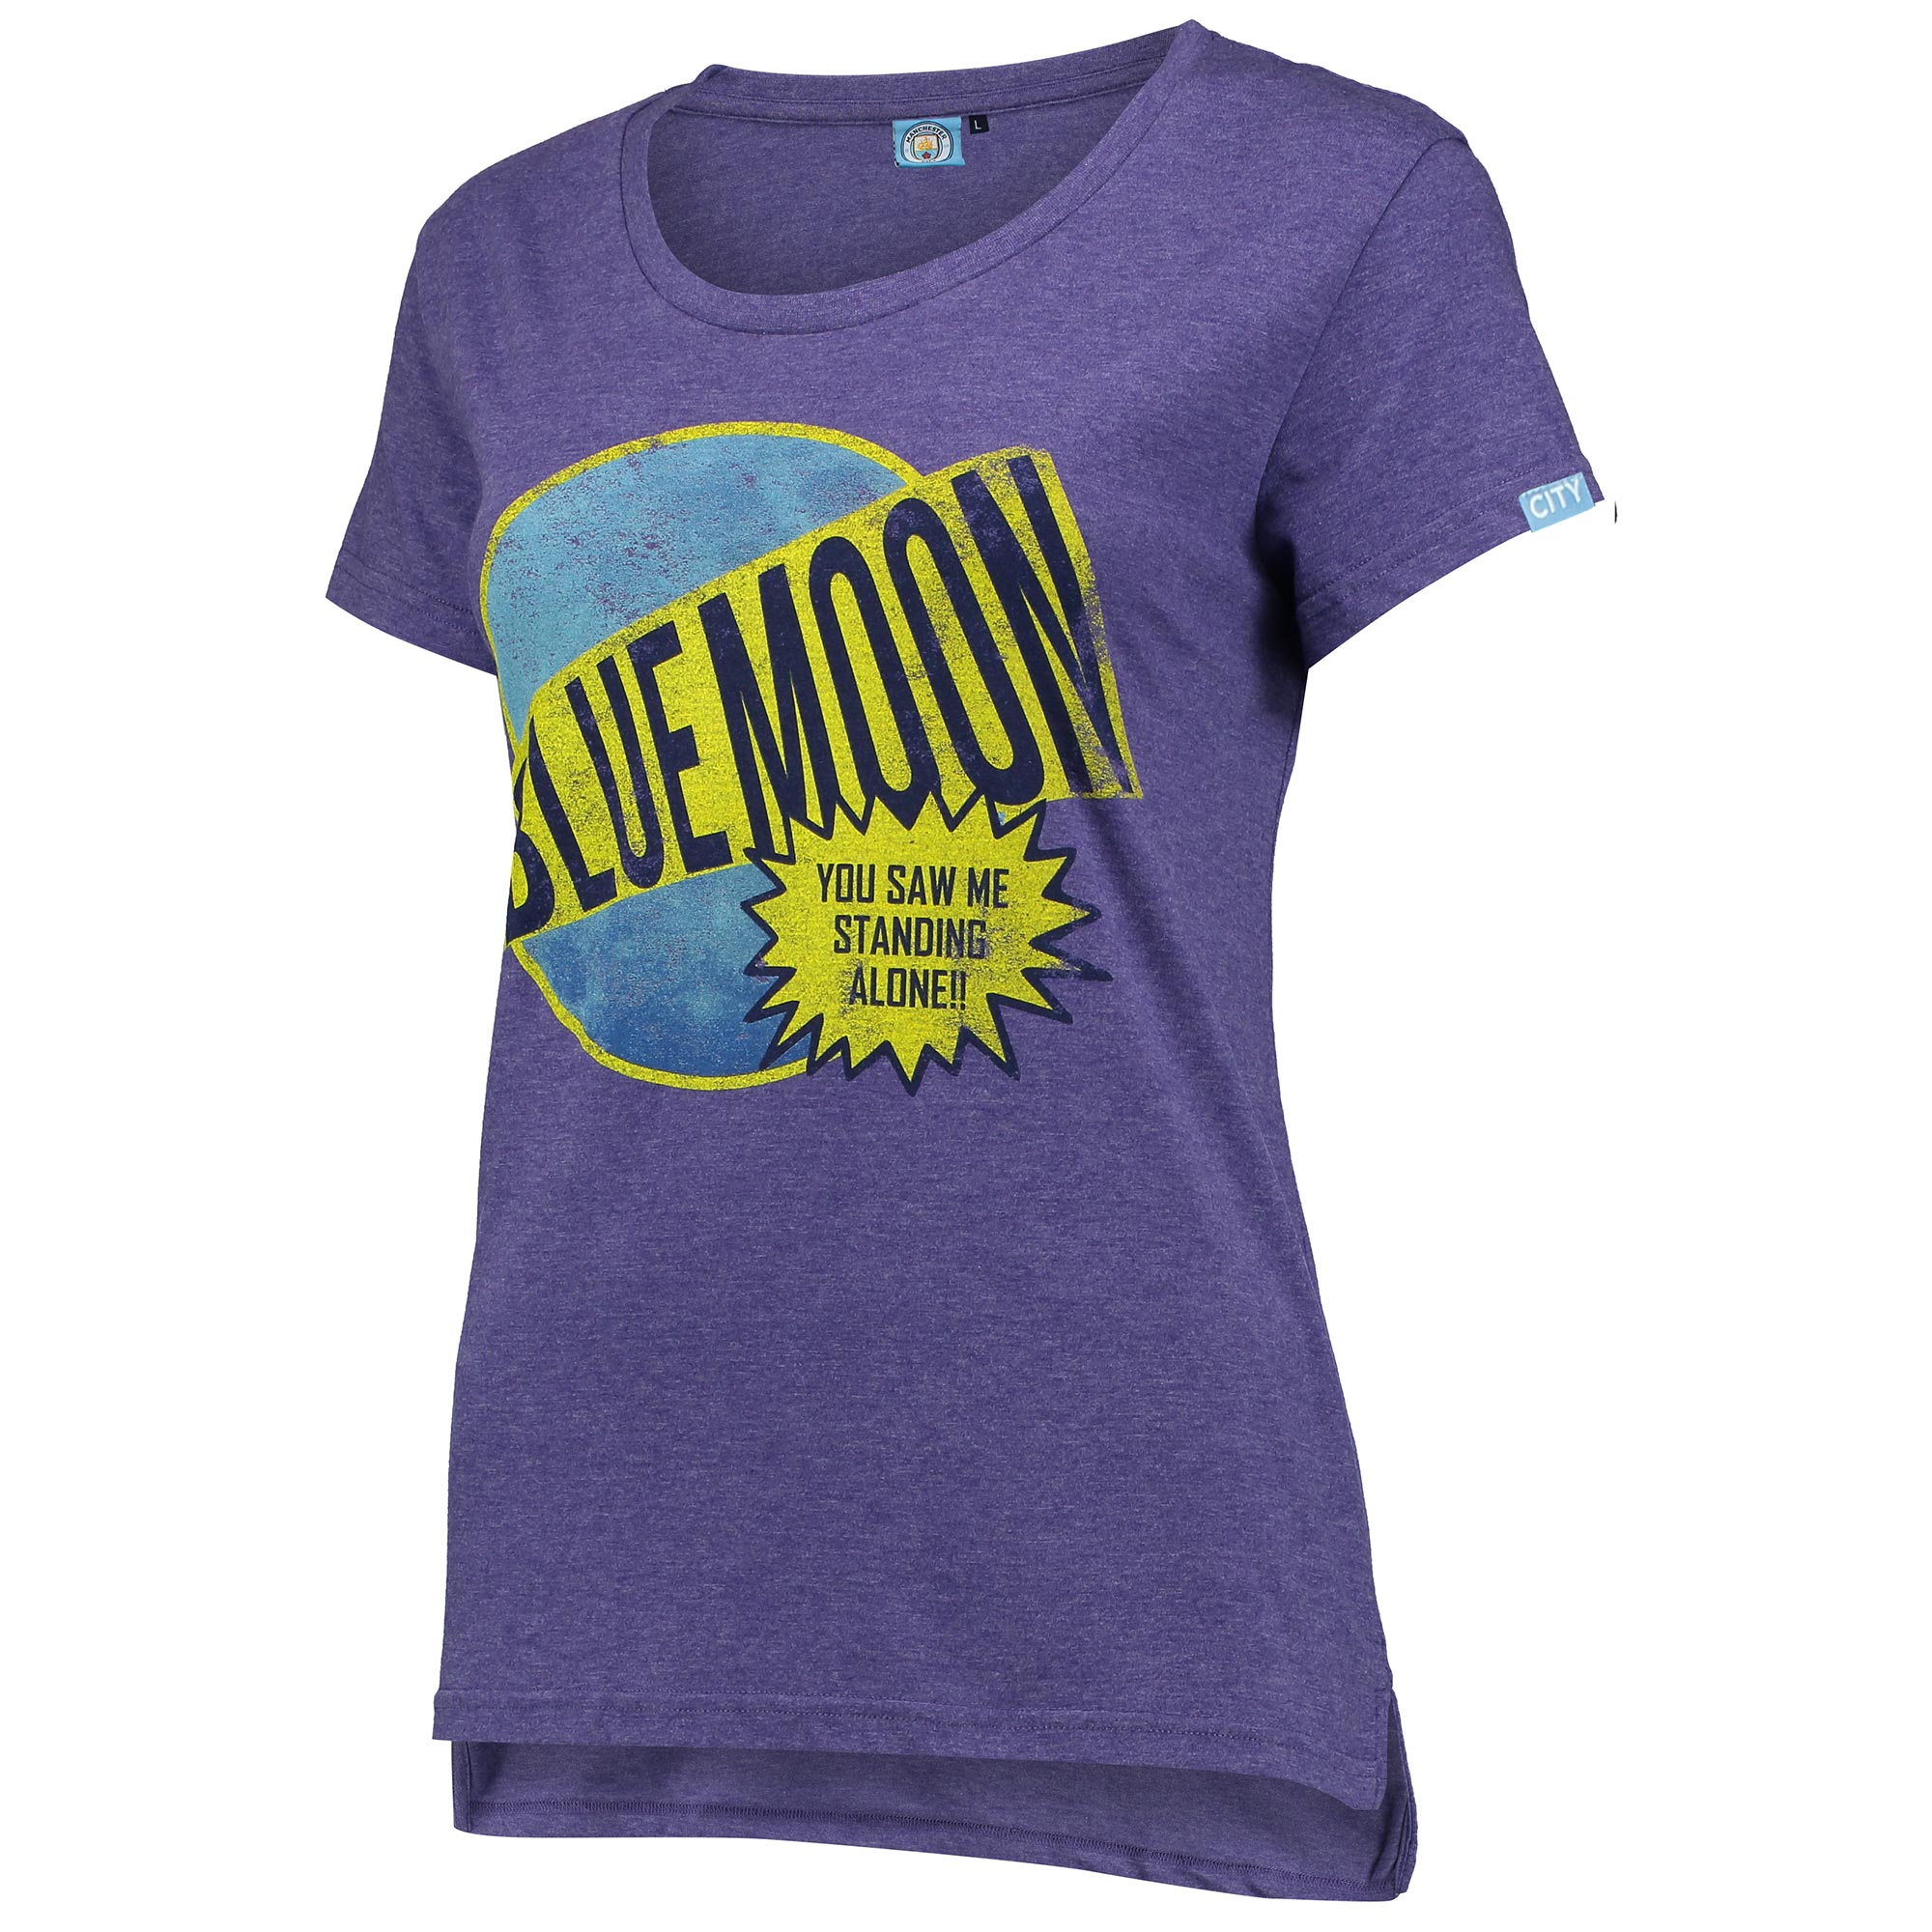 Manchester City Blue Moon T-Shirt - Purple - Womens